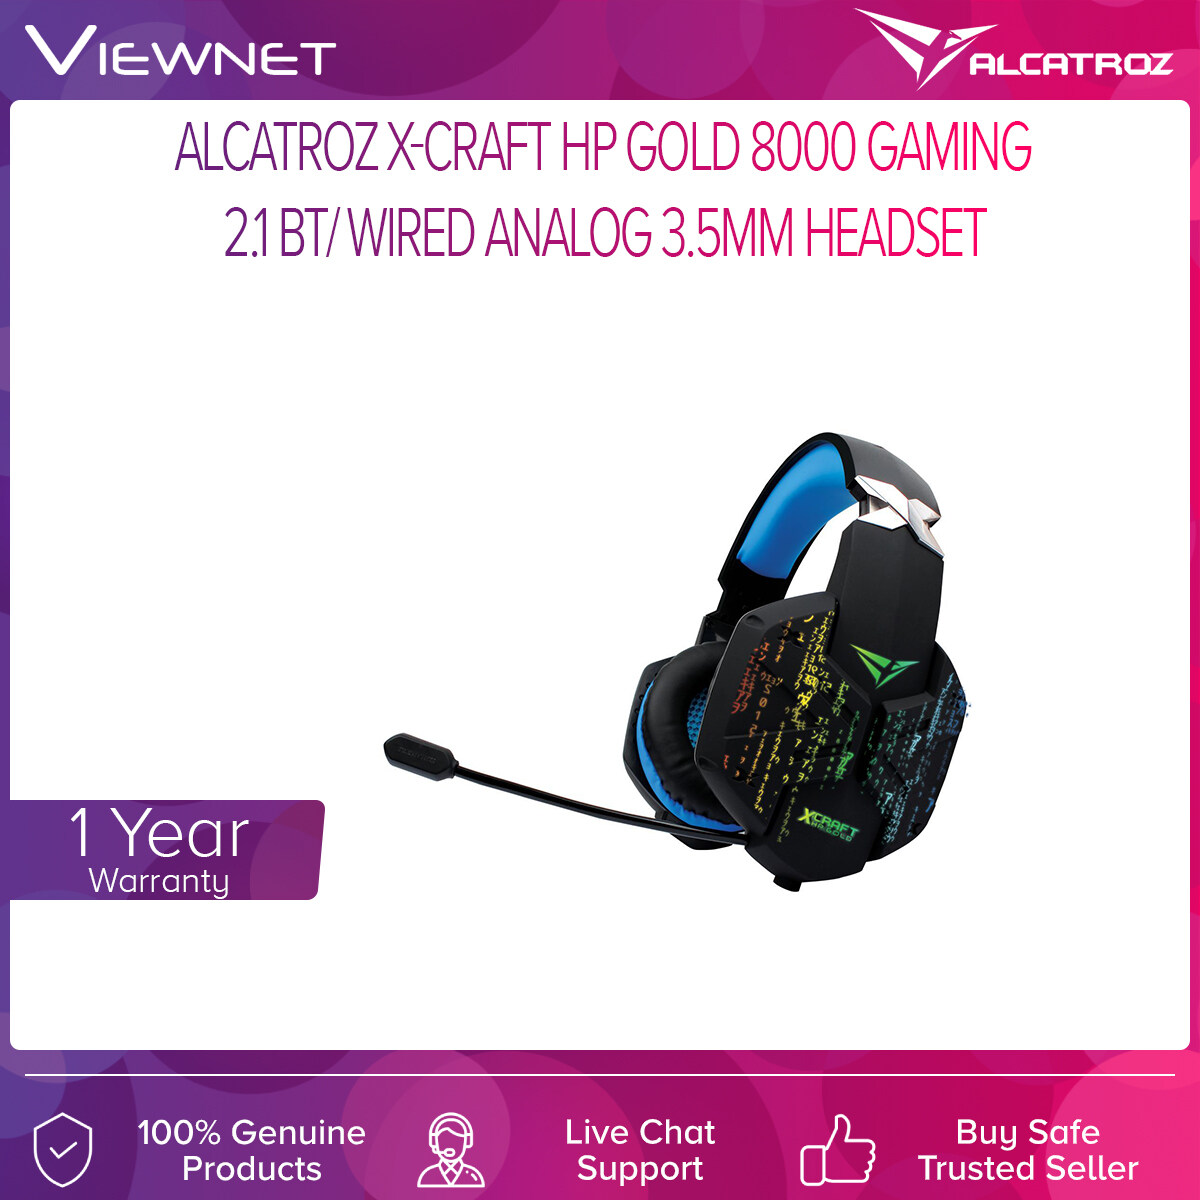 Alcatroz X-Craft HP Gold 8000 Gaming 2.1 BT/ Wired Analog 3.5MM Headset